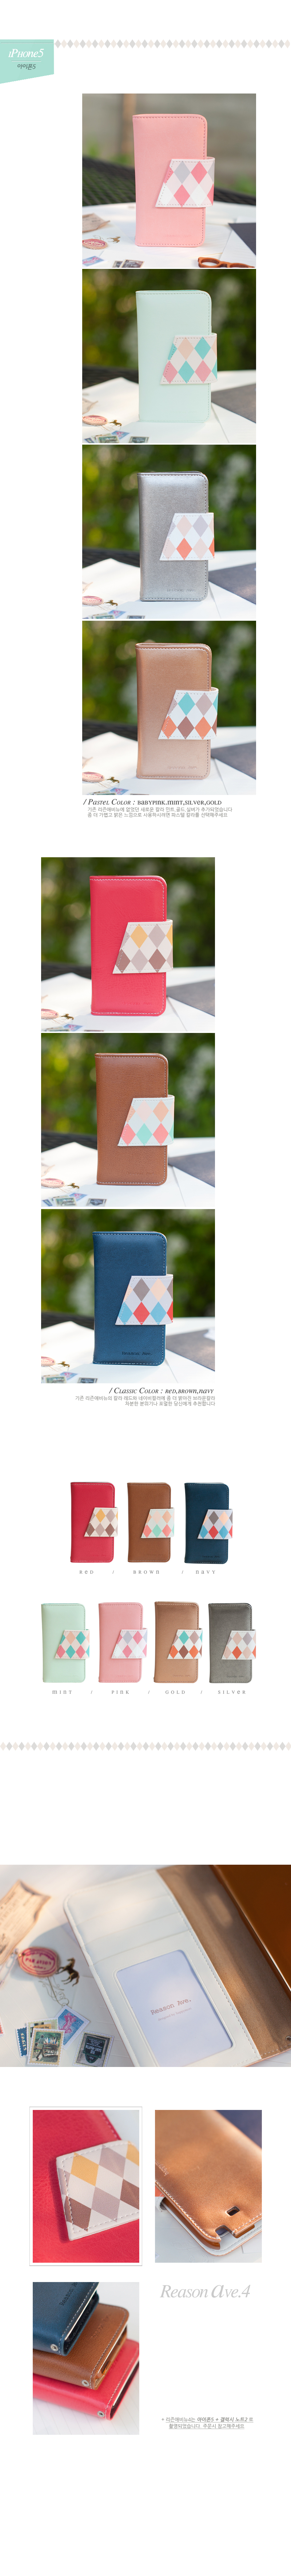 [HAPPYMORI]Faux Leather Case _ Reason Ave.4 (iPhone5_5s,Galaxy s4,Optimus Gpro,Galaxy Note2)